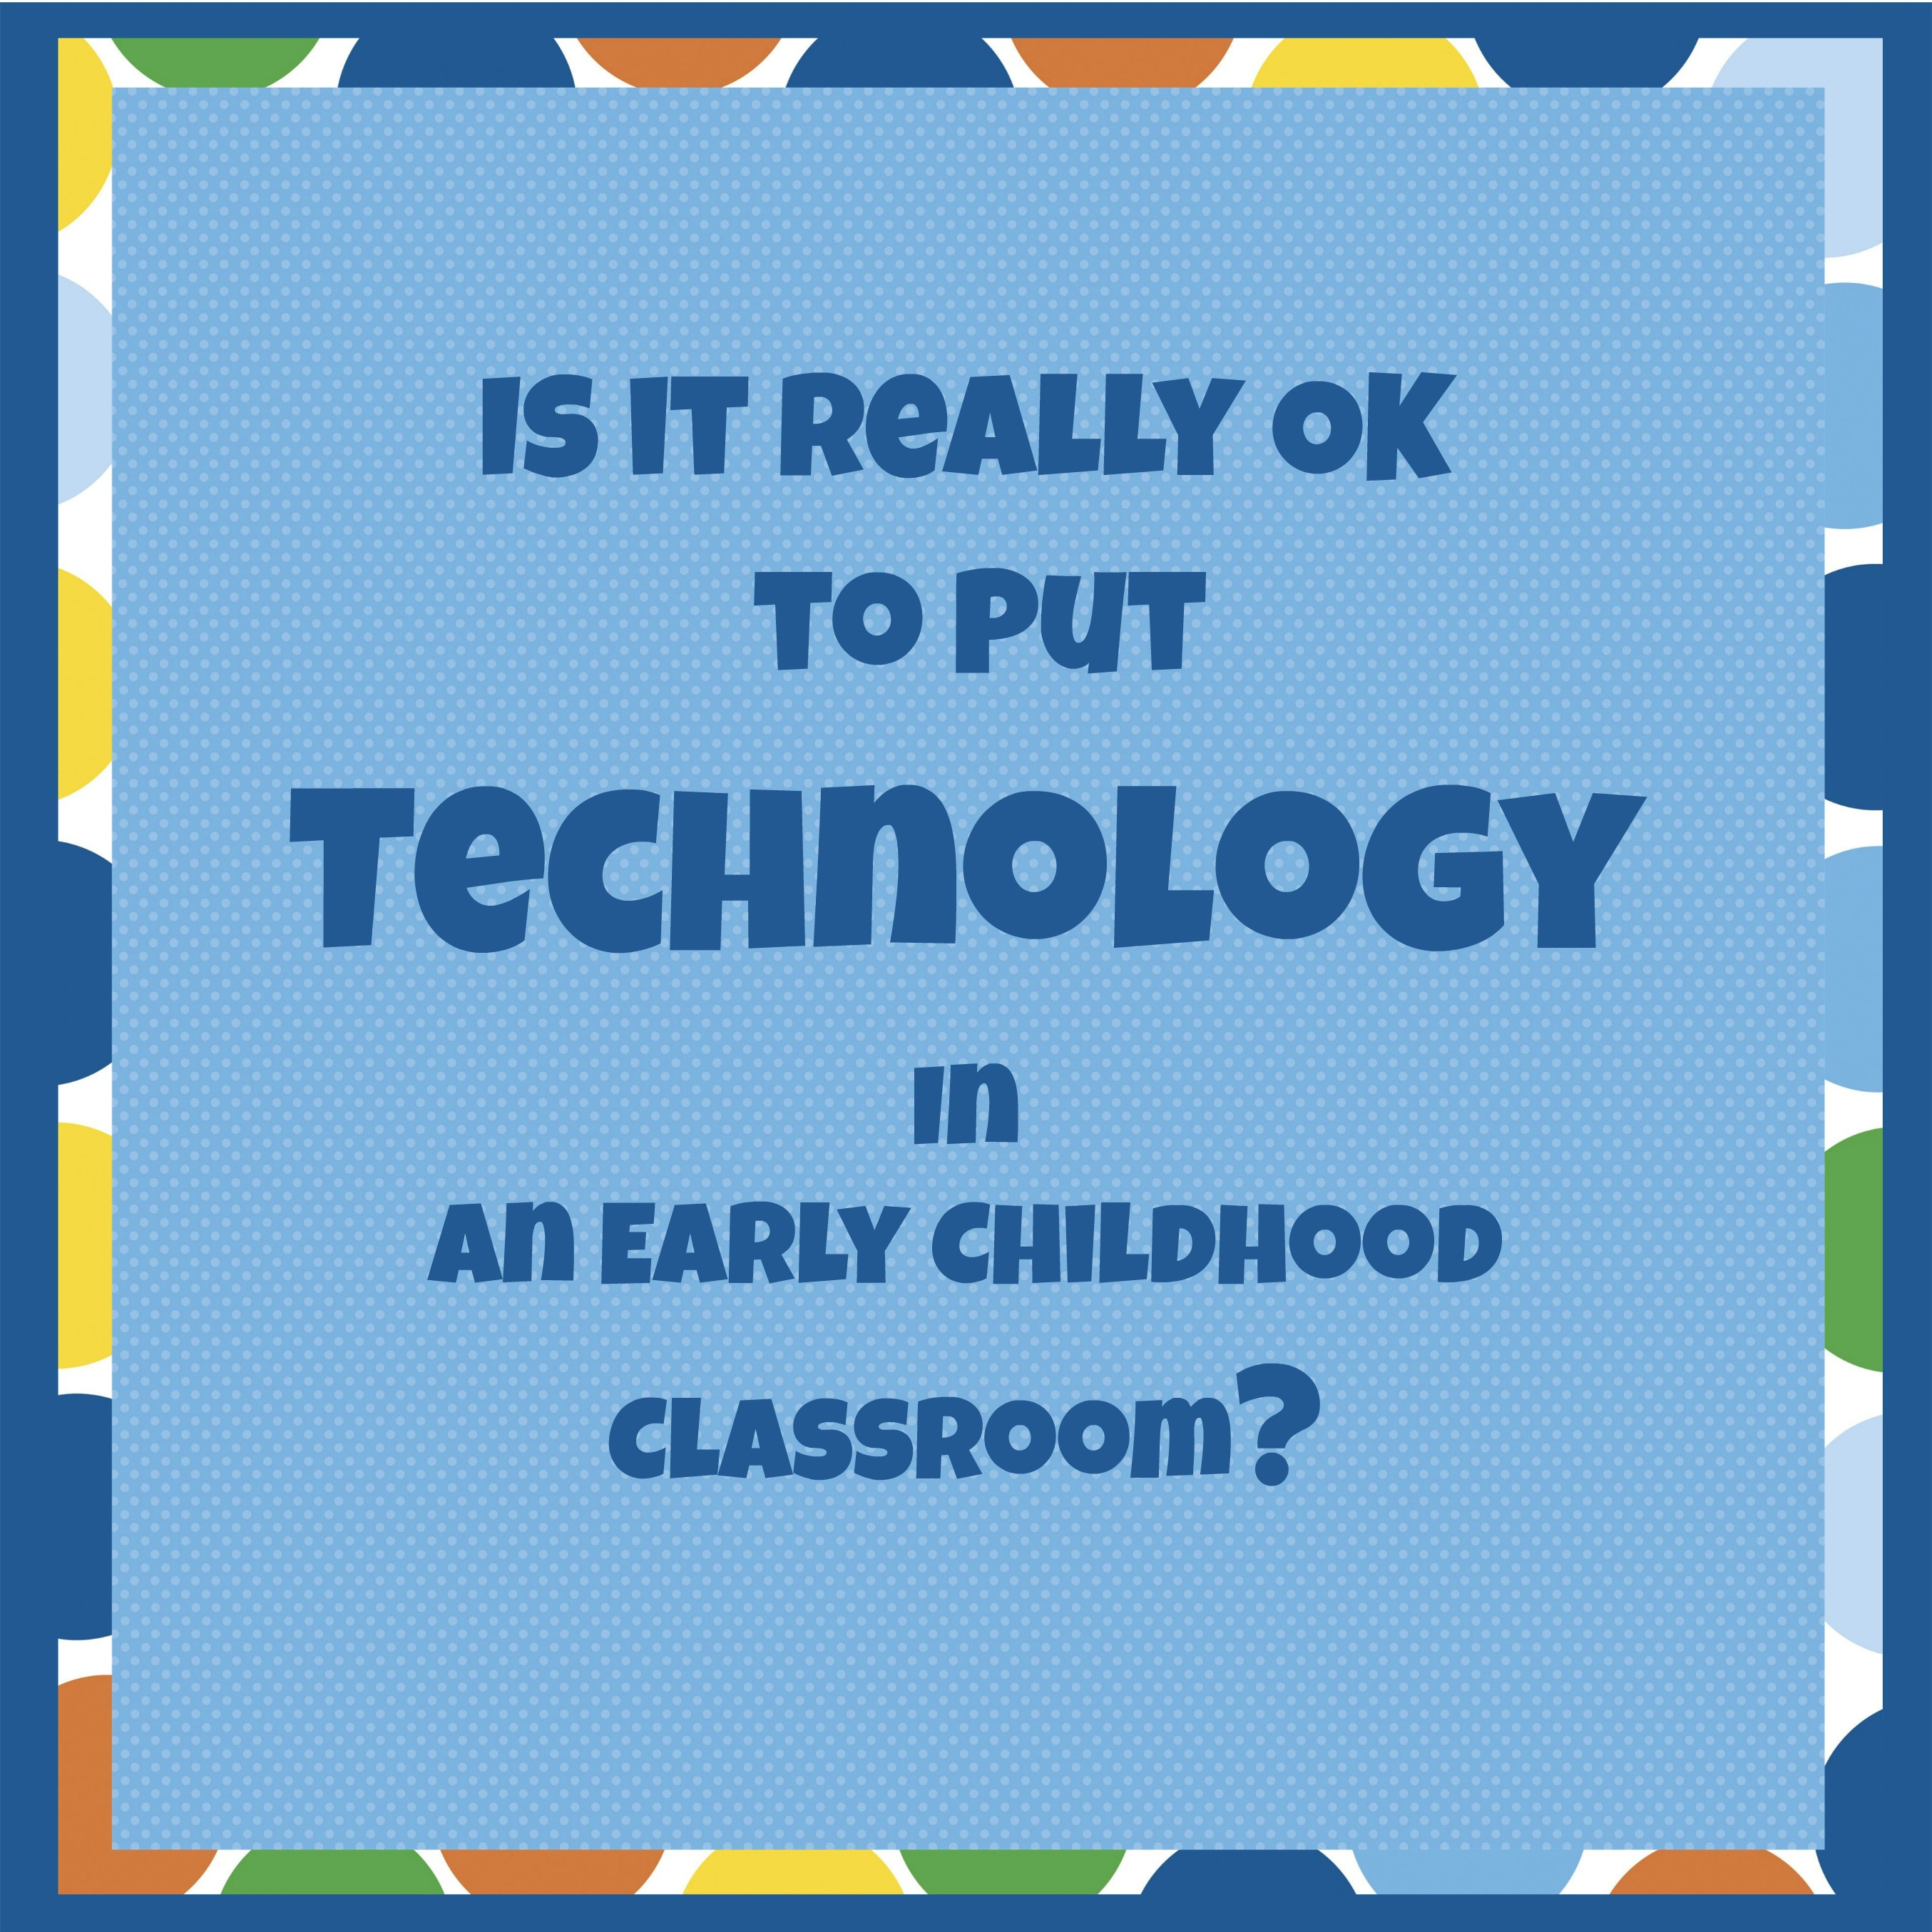 Is Technology In Early Childhood OK